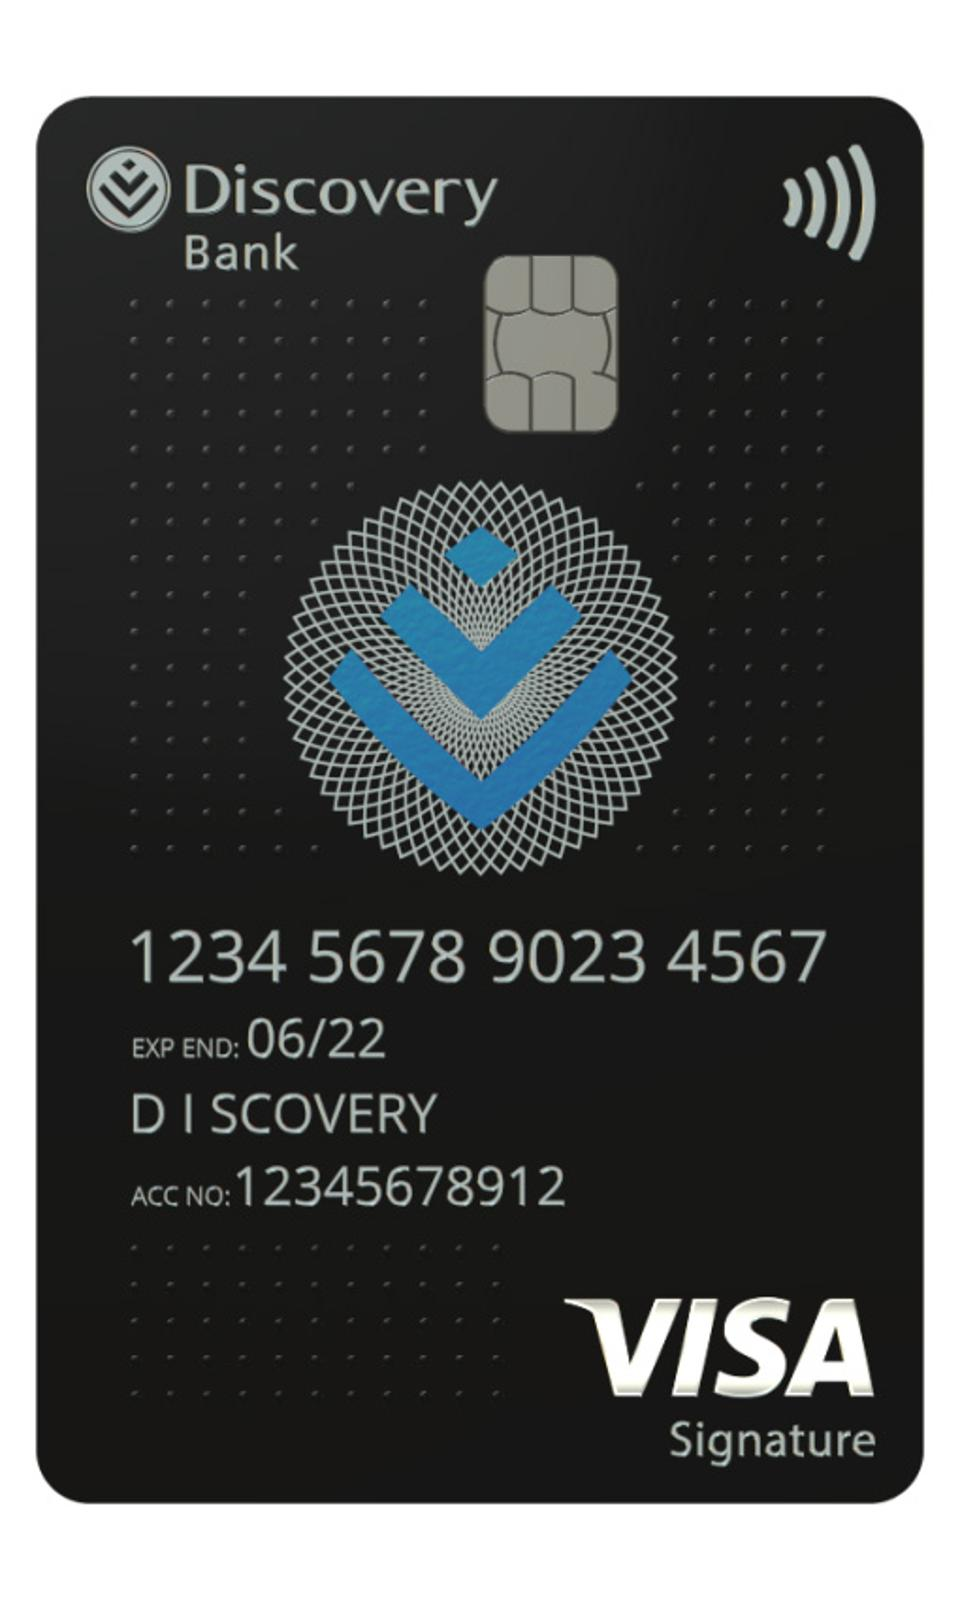 Discovery Bank's vertical credit card.